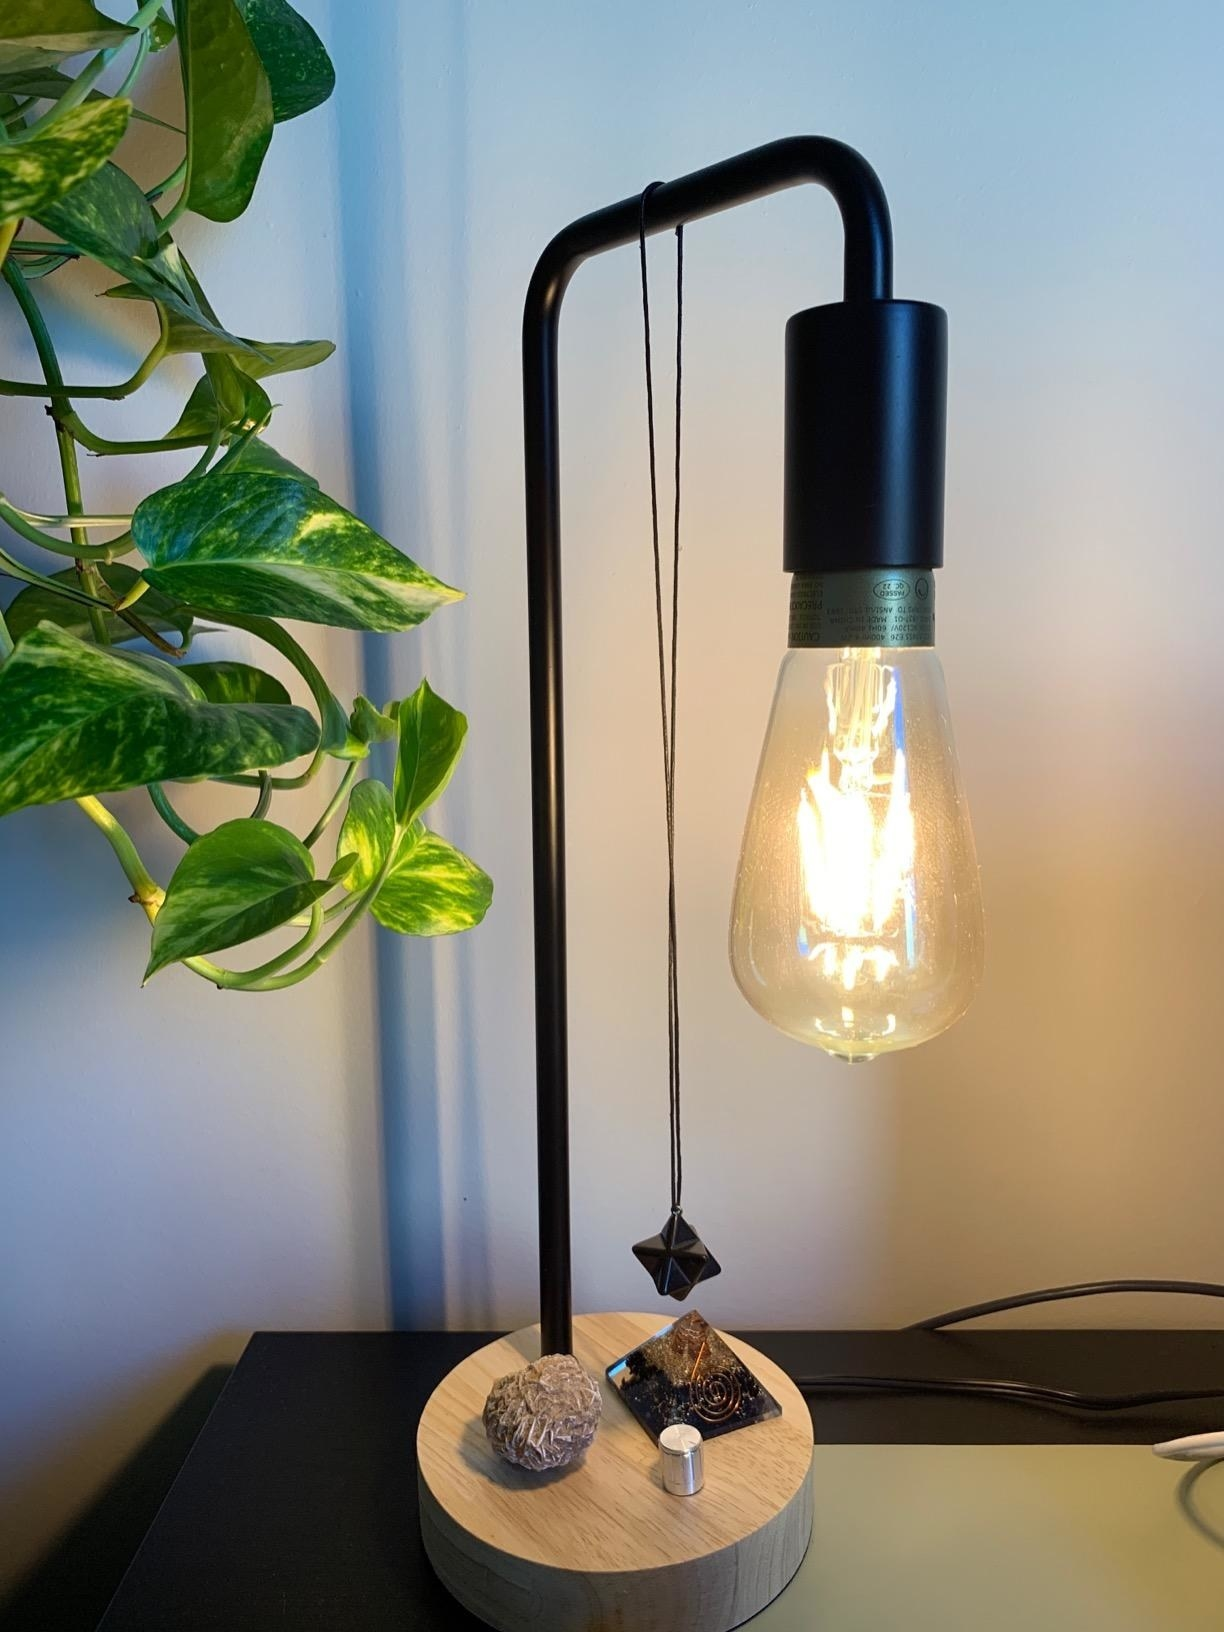 a desk lamp with an exposed bulb